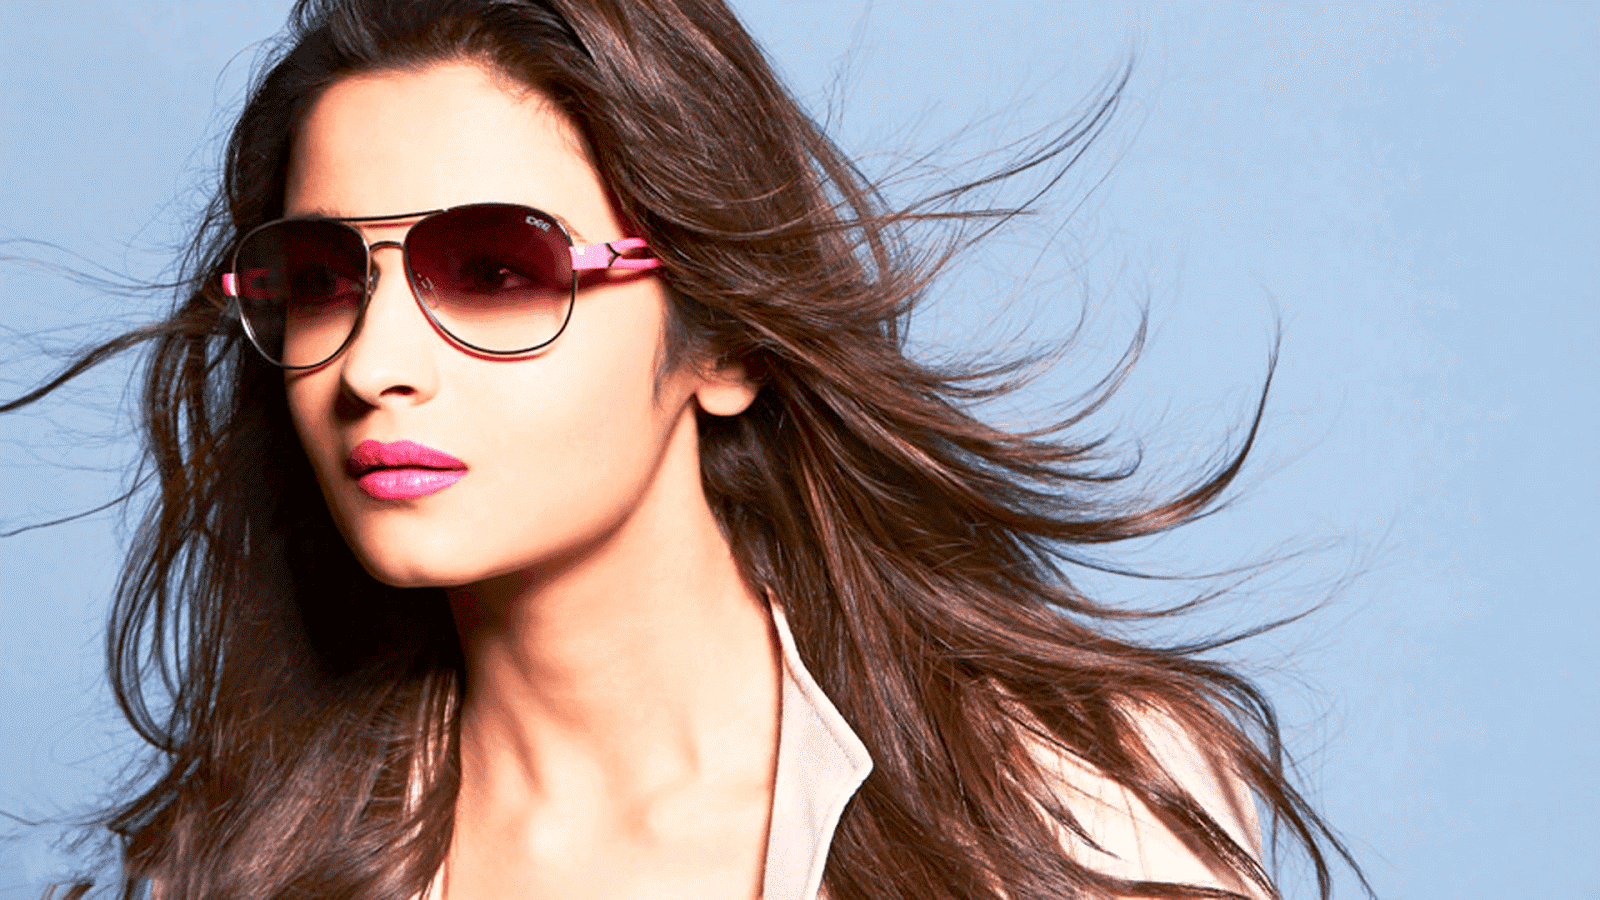 Chocolate Day Hd Wallpaper Alia Bhatt Wallpapers Hd Download Free 1080p